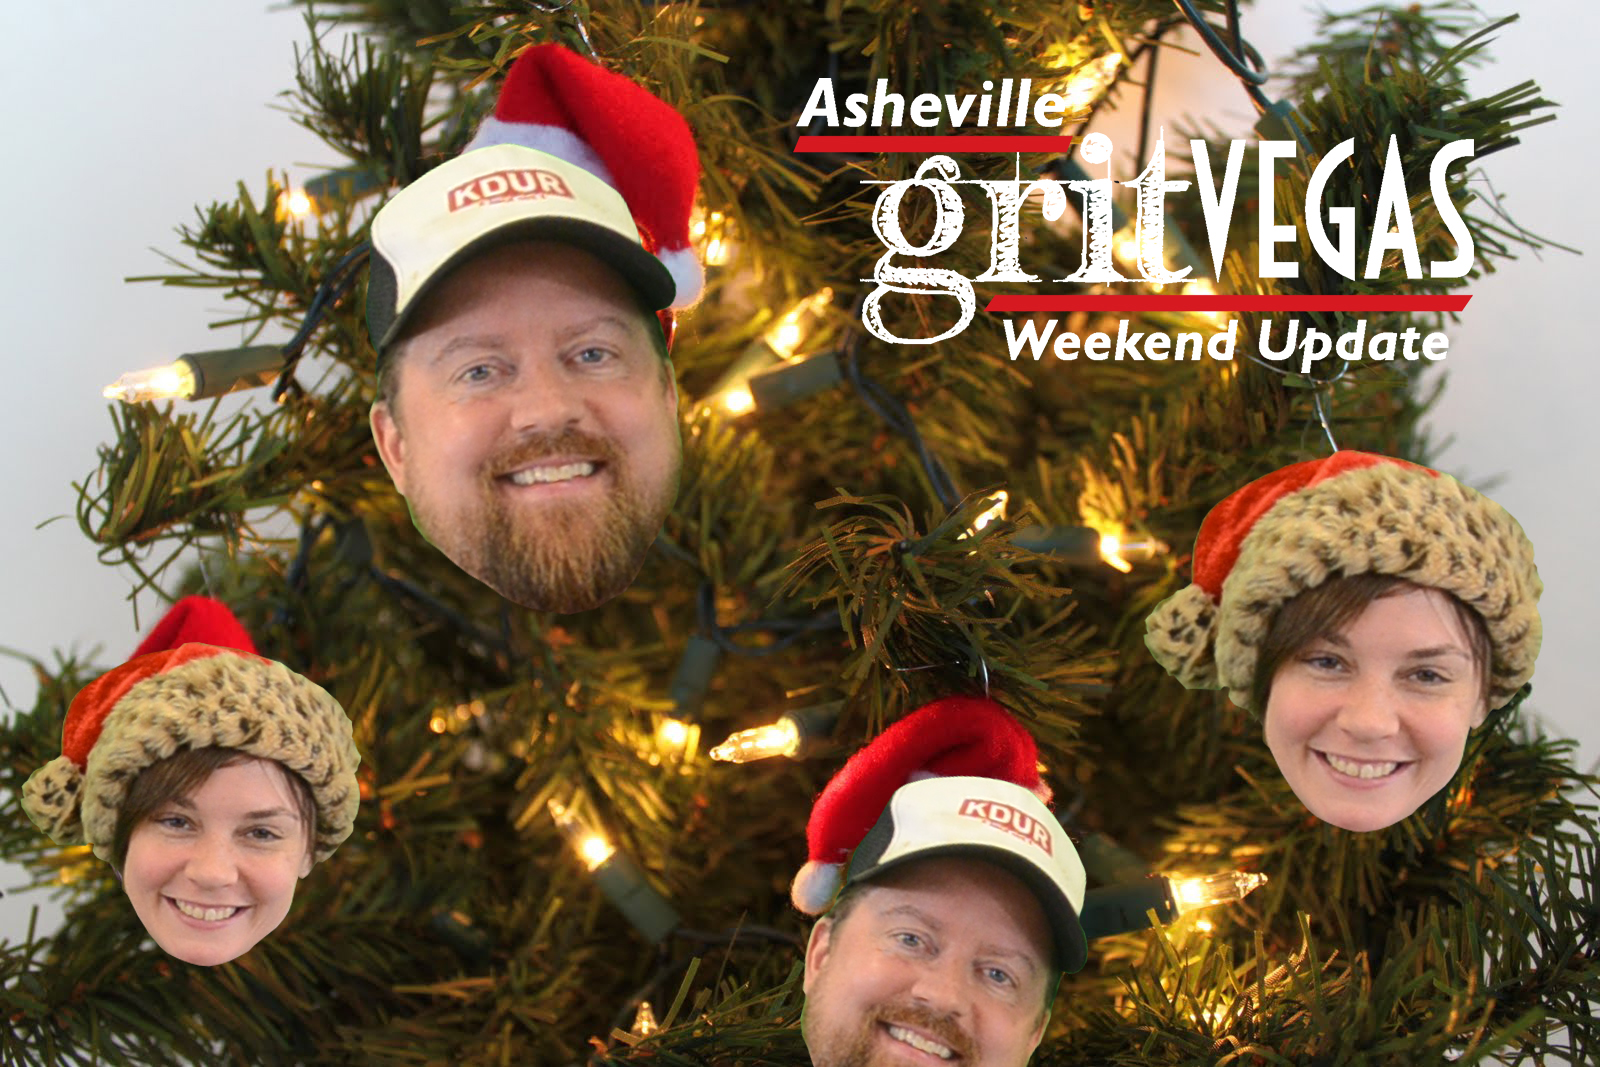 VIDEO Things to do in Asheville weekend of Christmas '16